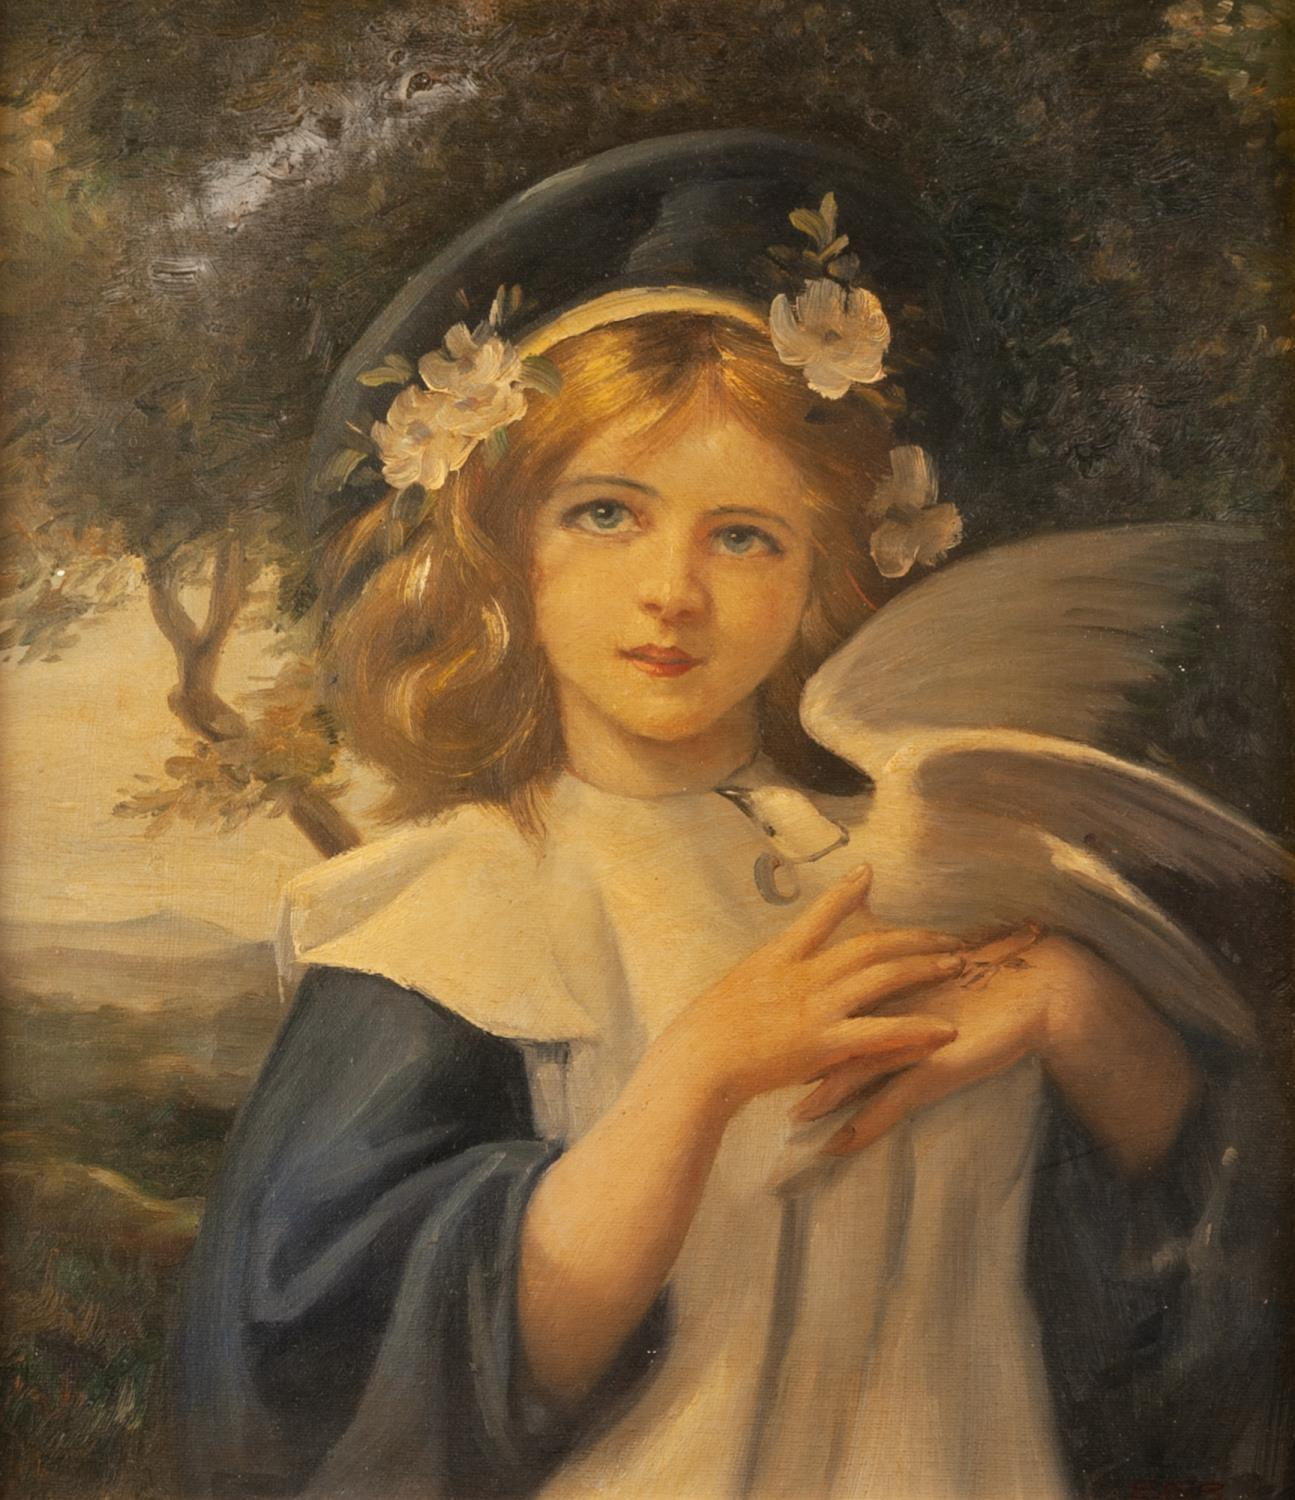 Lot 253 - FROM THE ORIGINAL, MID 20th CENTURY OIL PAINTING ON PANEL Mother and child feeding doves by flight